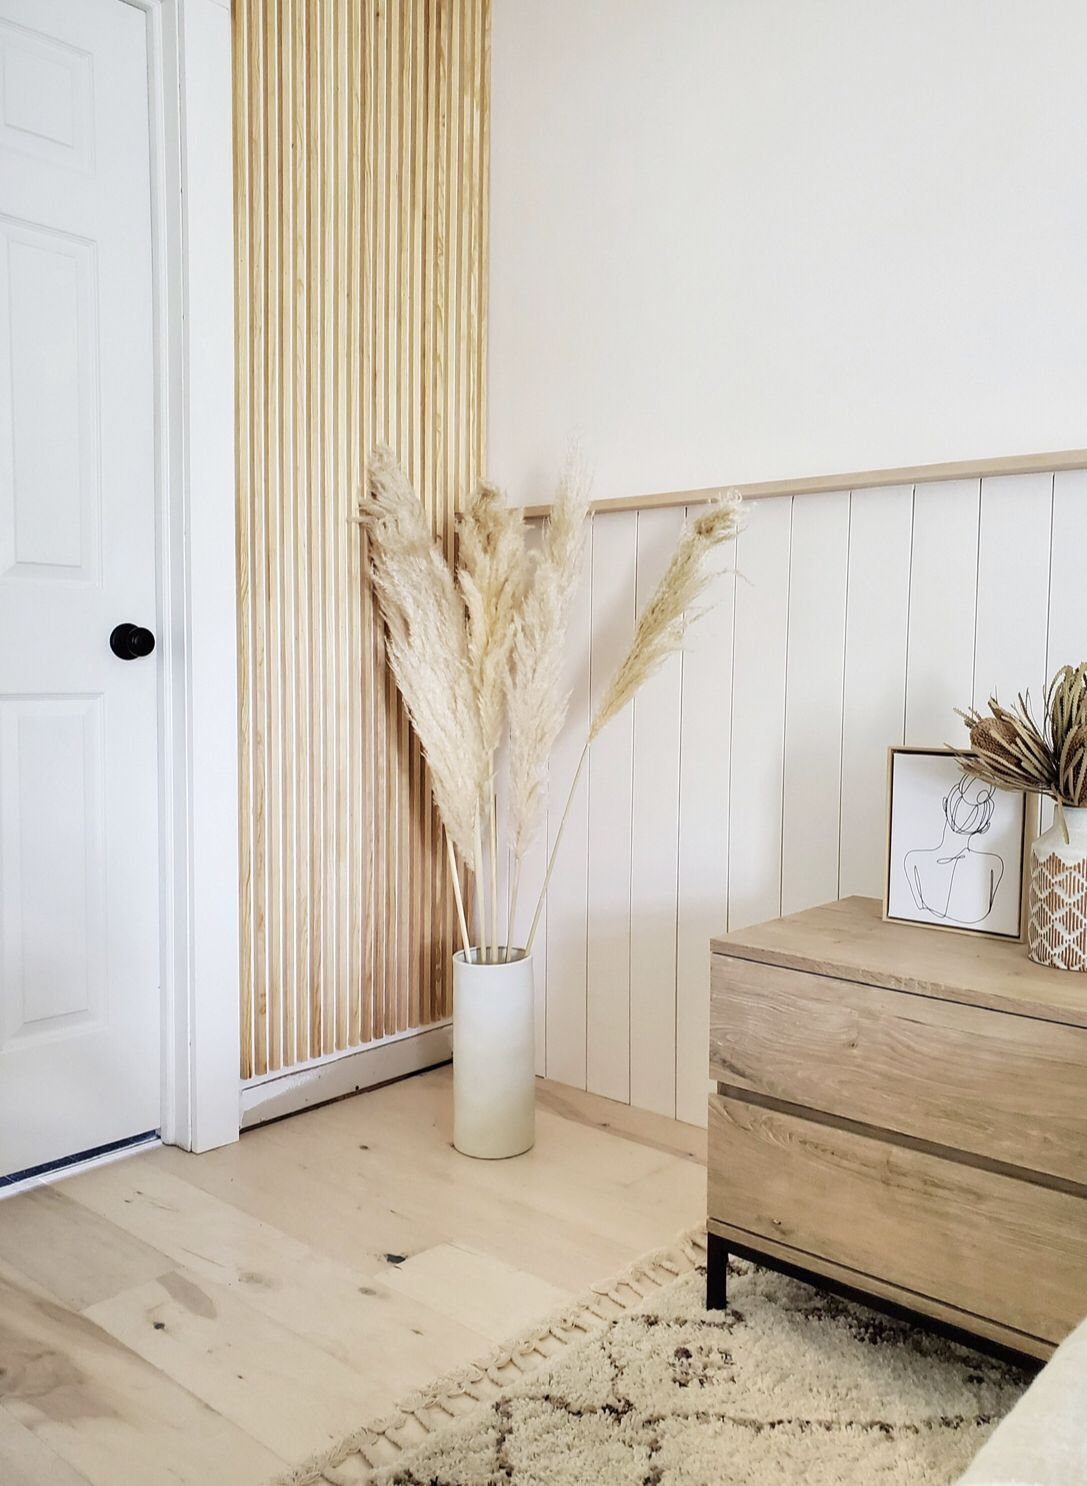 Diy Wood Slat Accent Wall With Ledge Over Shiplap In 2020 Wood Slat Wall Wood Wall Decor Bedroom Slat Wall